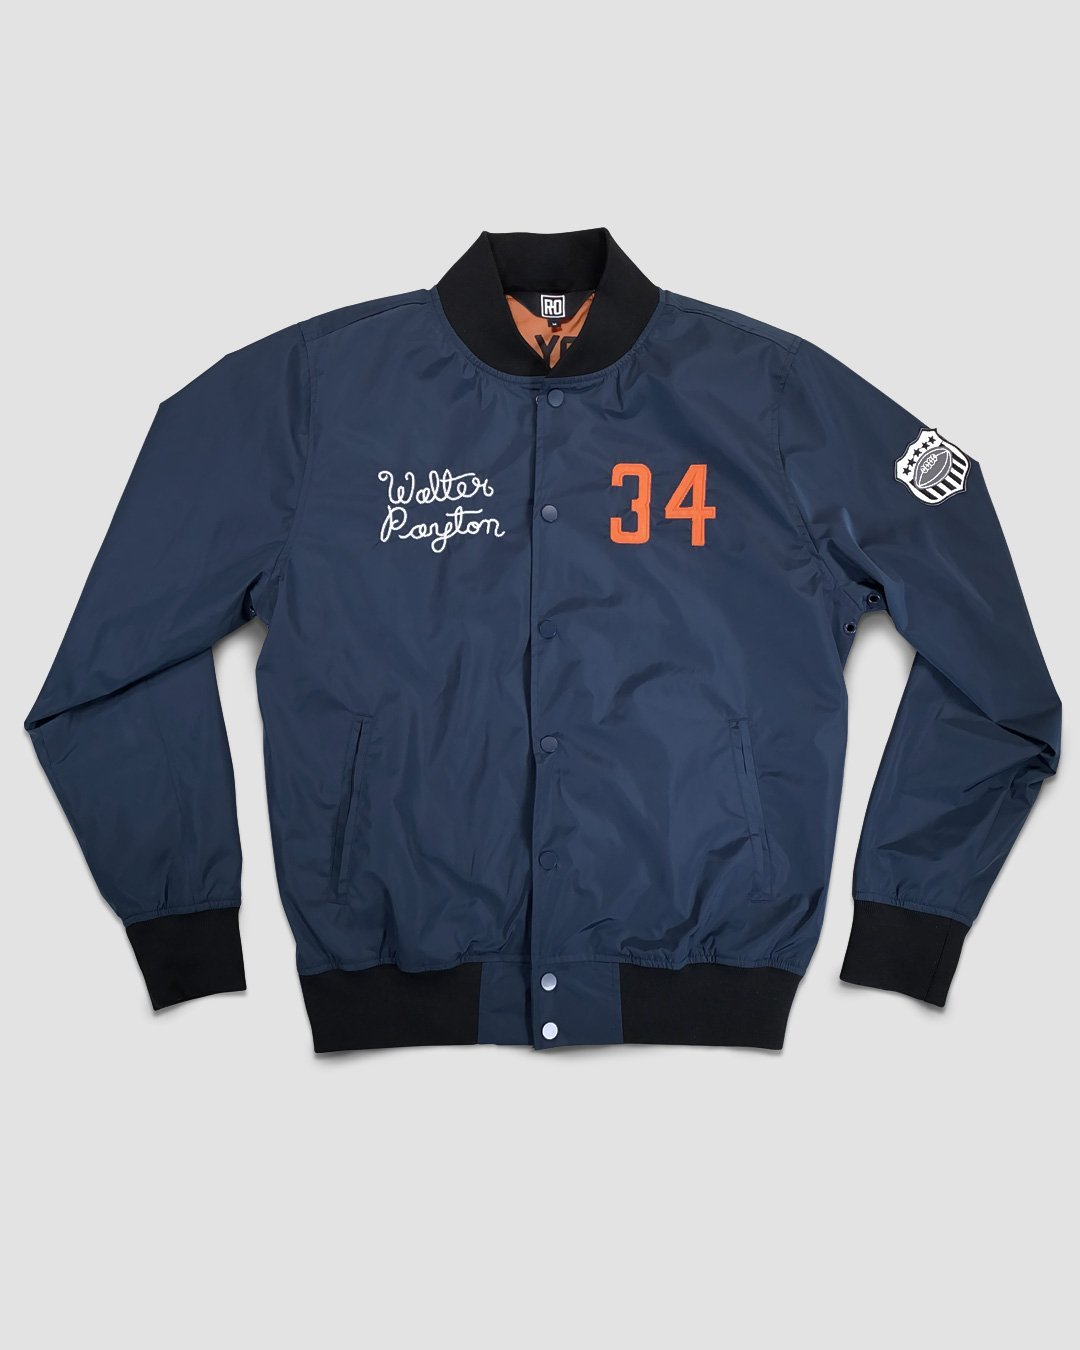 Walter Payton #34 Stadium Jacket - Roots of Inc dba Roots of Fight